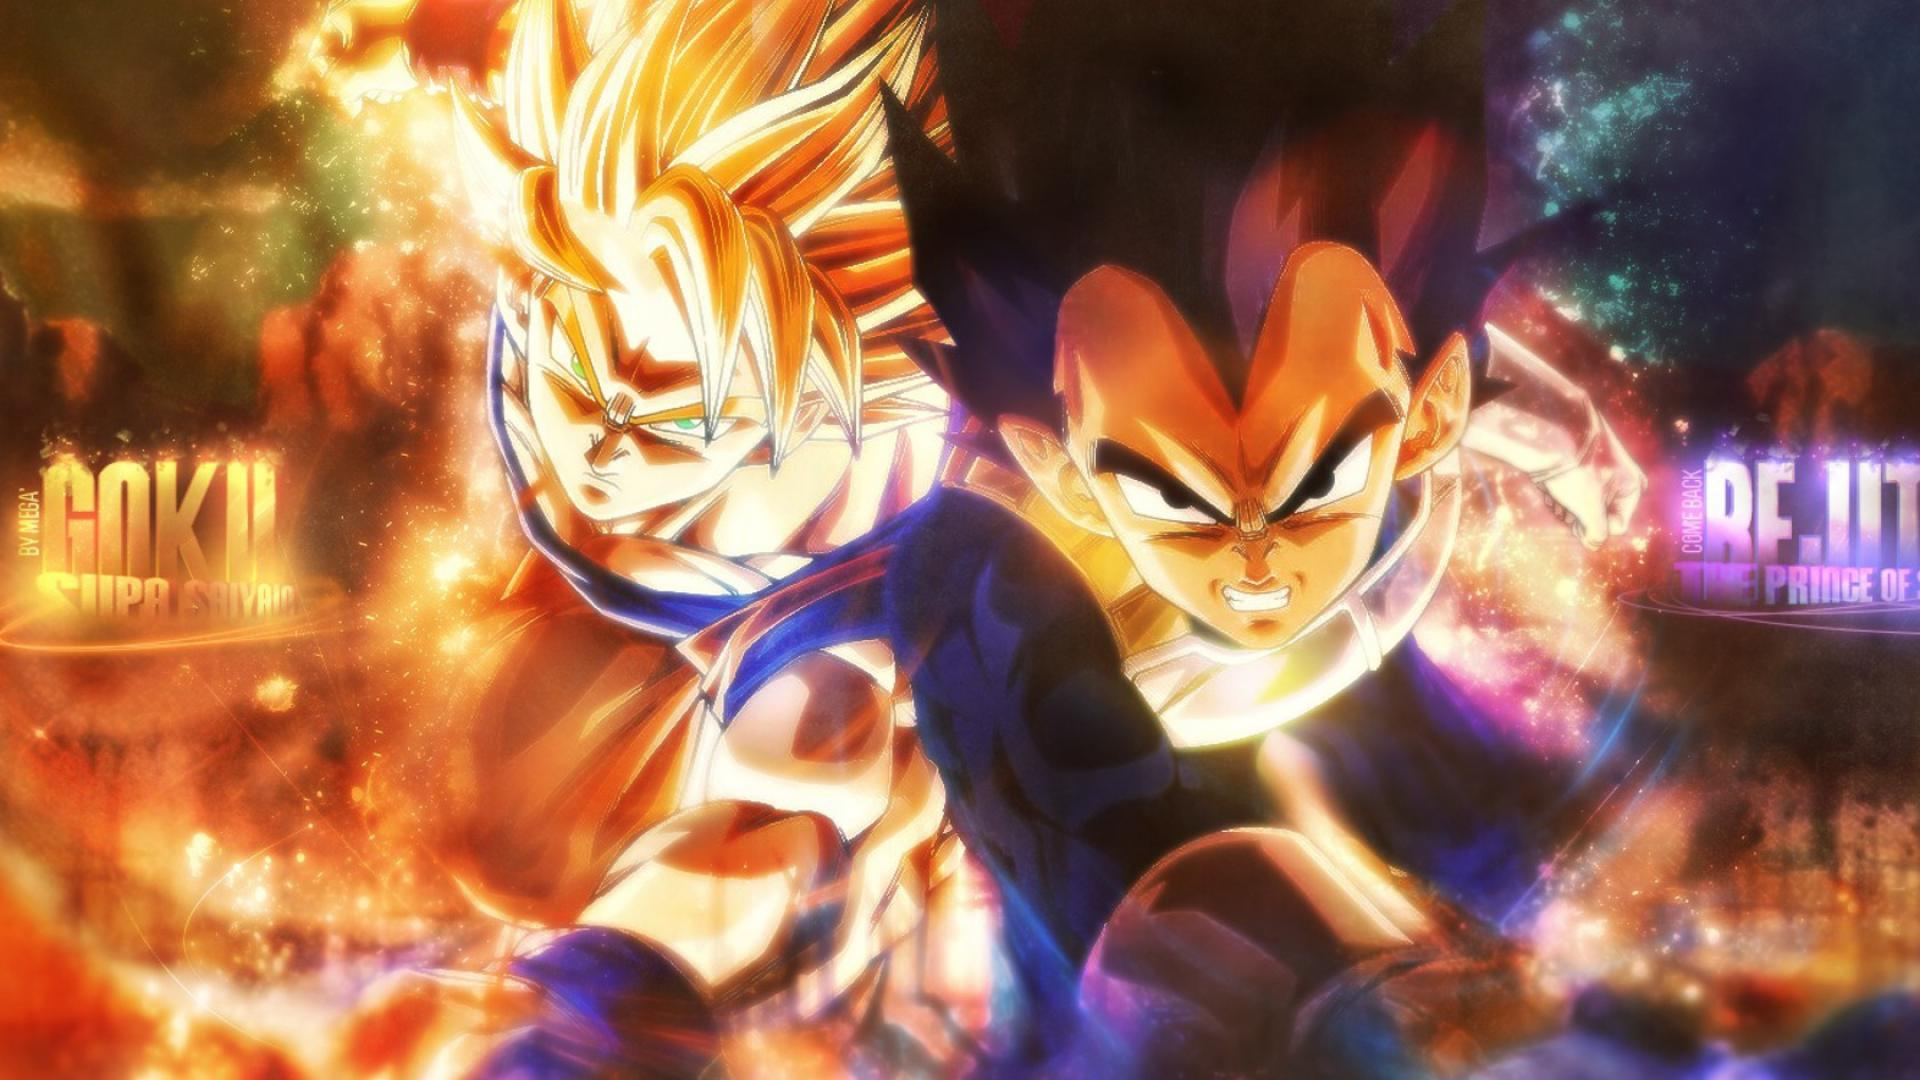 vegeta son goku dragon ball super saiyan HD Wallpaper of Anime Manga 1920x1080